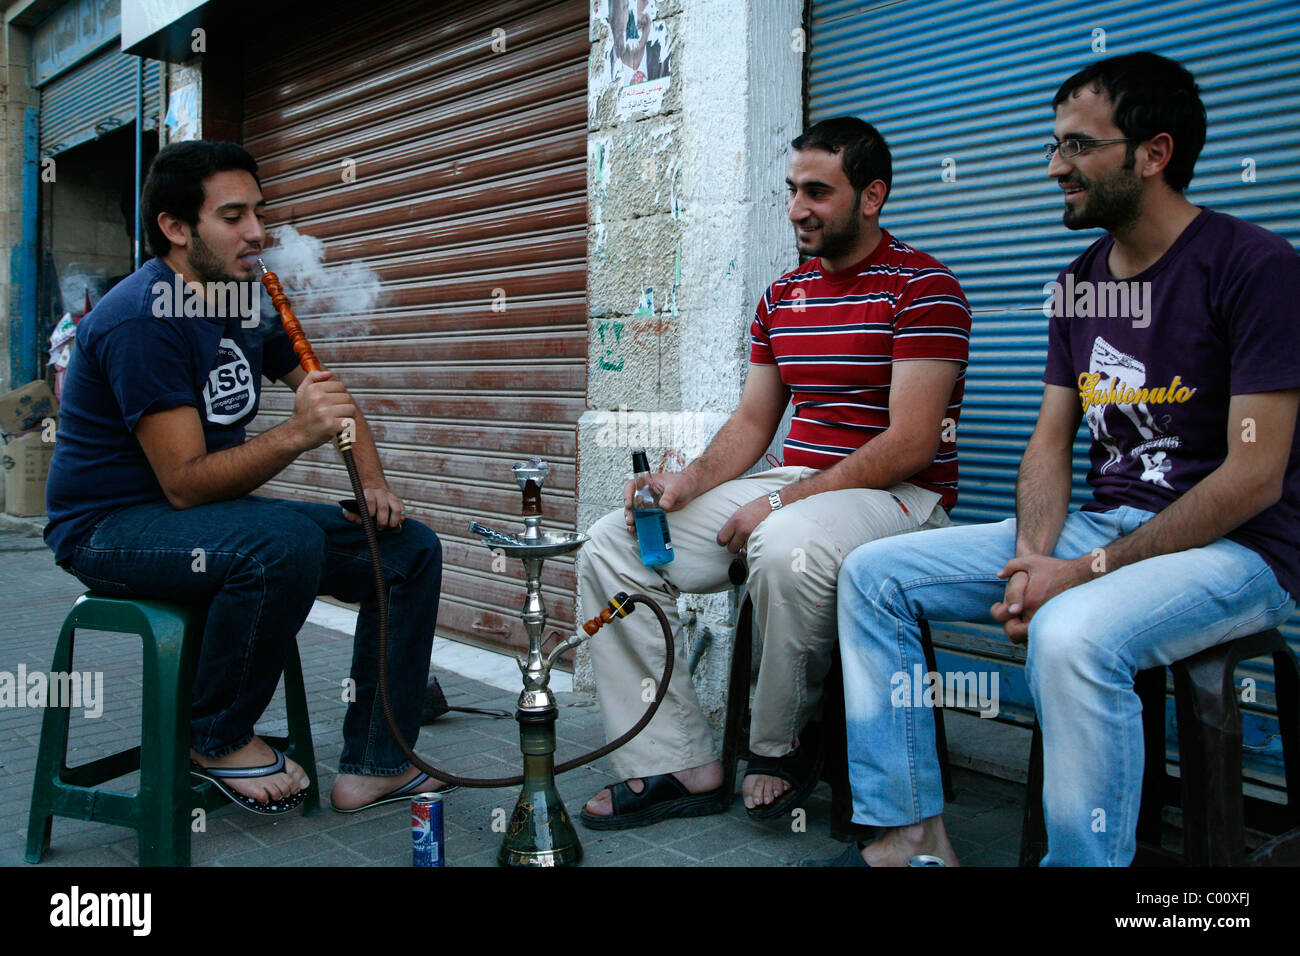 Young men smoking nargileh (water pipe) on a street in Madaba, Jordan. - Stock Image